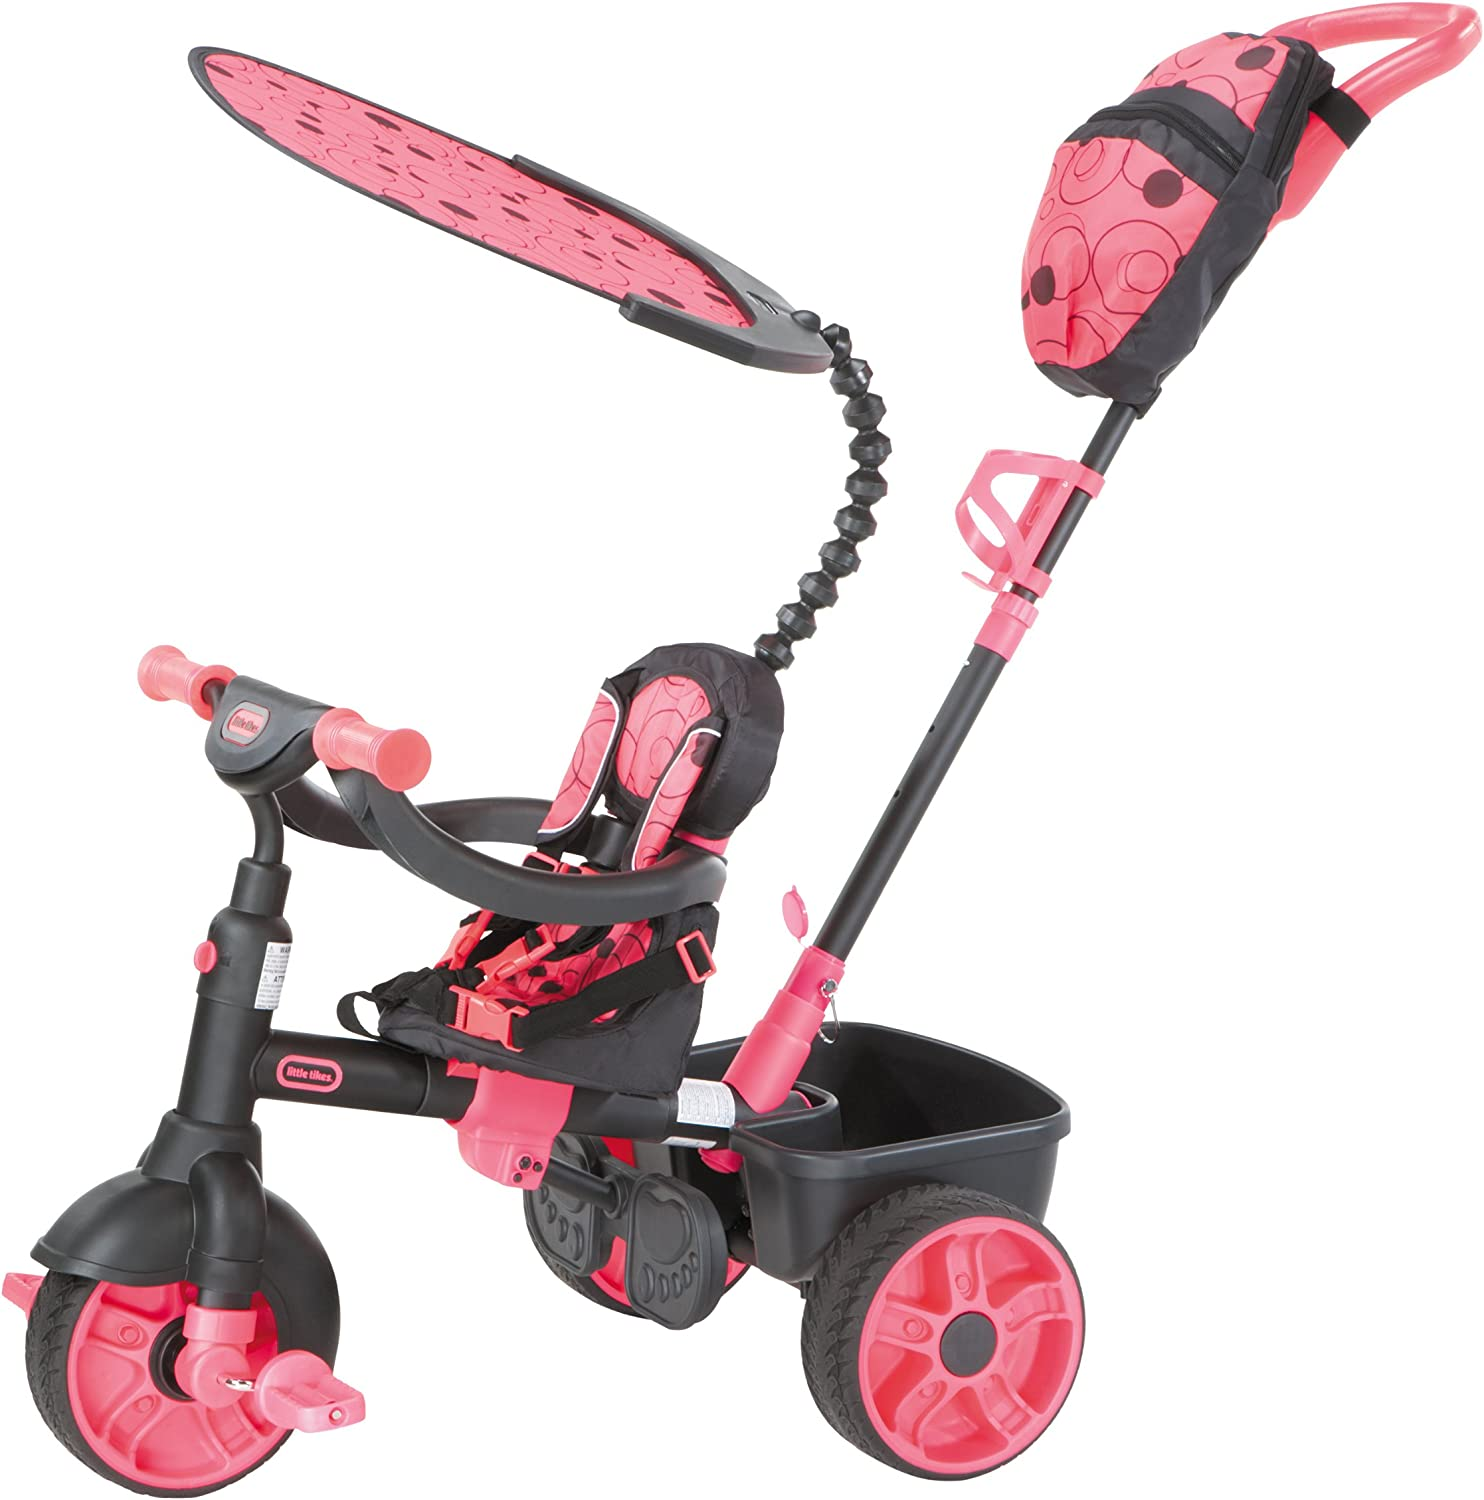 B00EPE5TFI Little Tikes 4-in-1 Ride On, Neon Pink, Deluxe Edition 81qS8f0fMAL.SL1500_